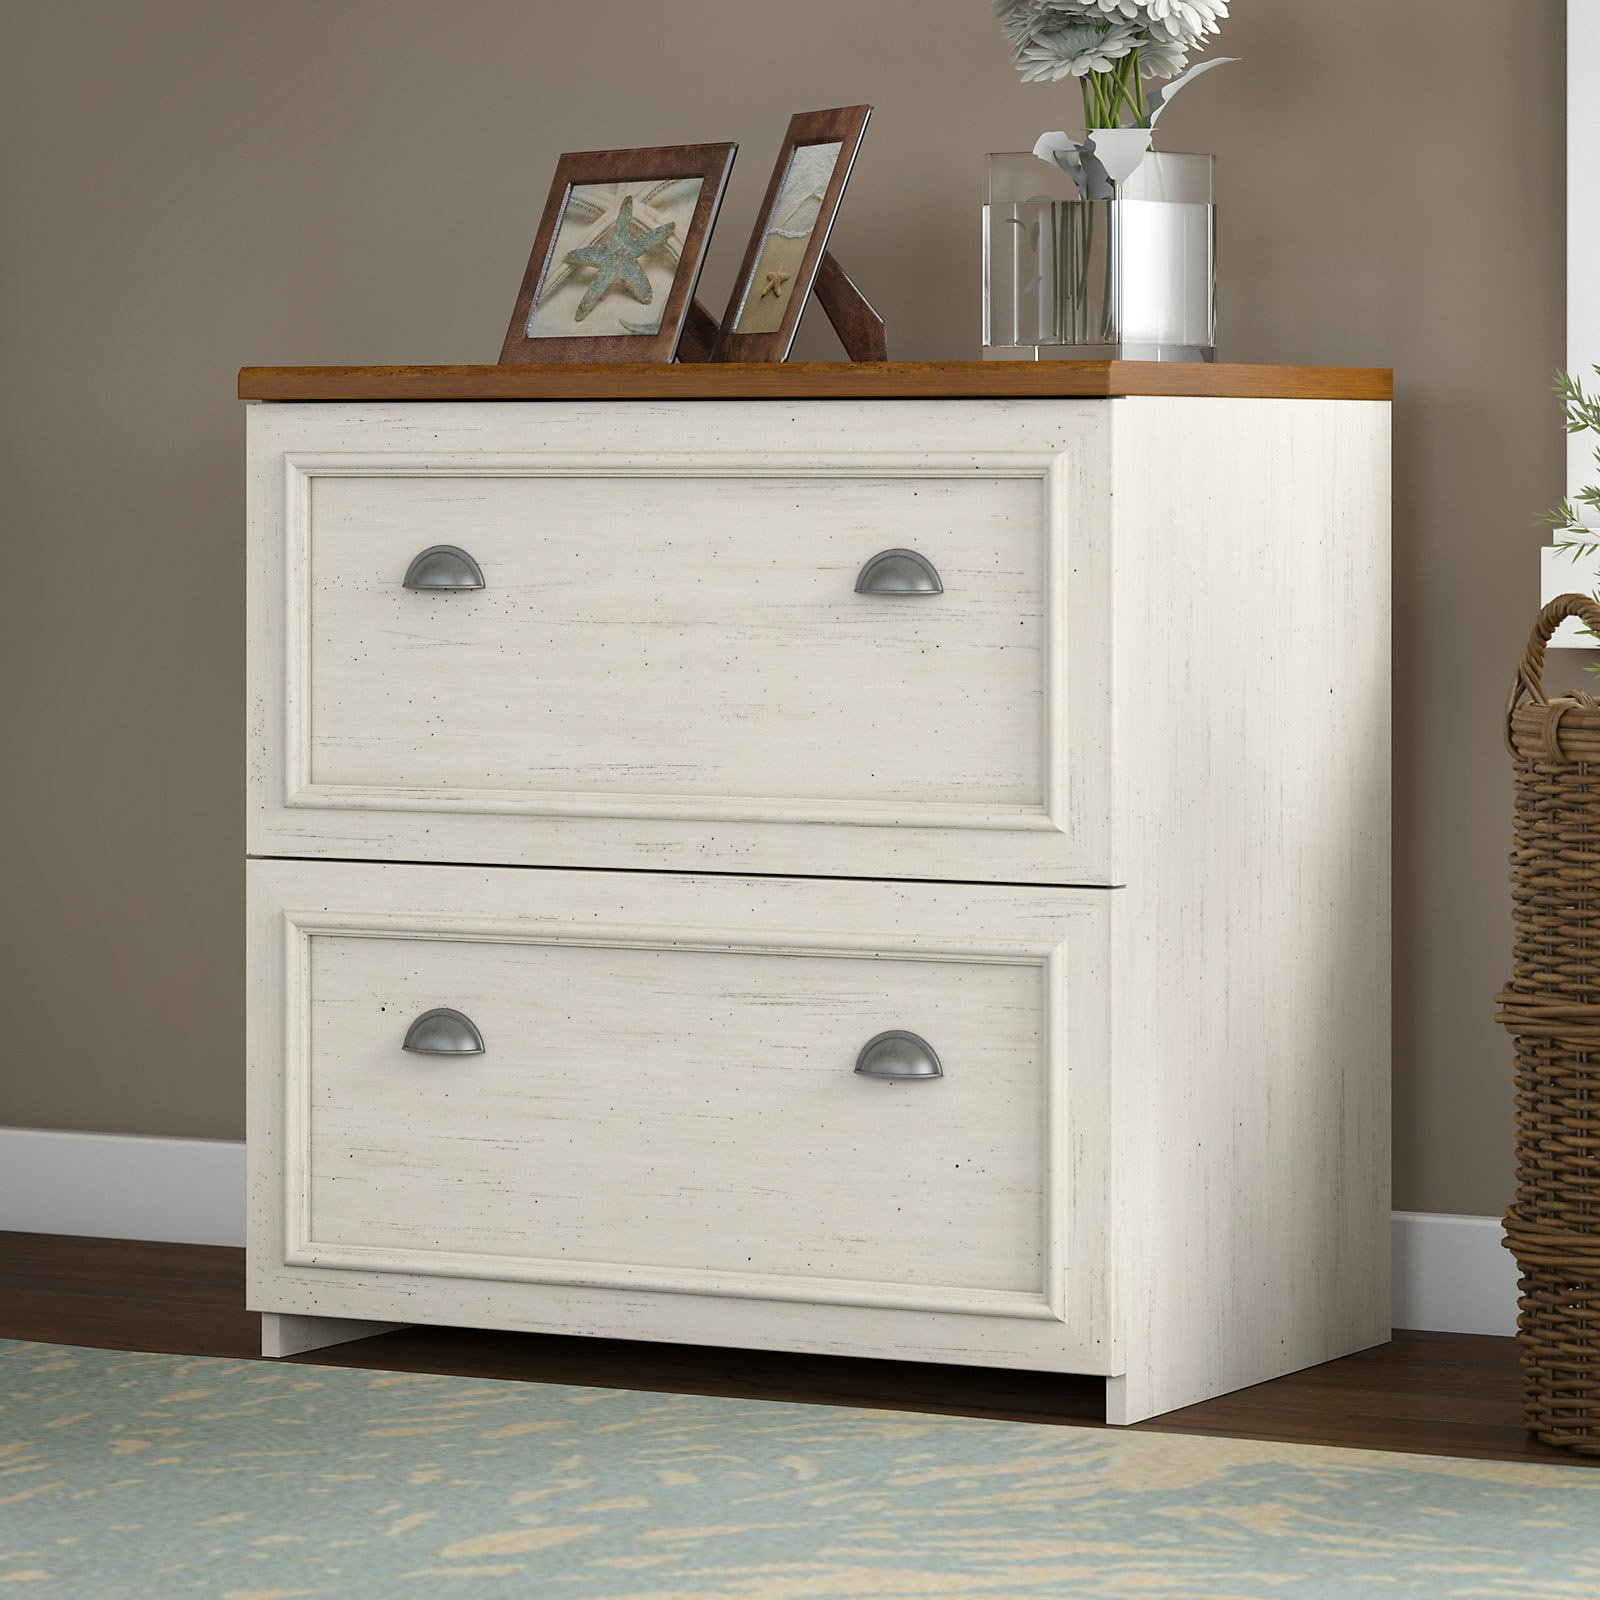 Exceptionnel Bush Fairview Lateral File   Antique White